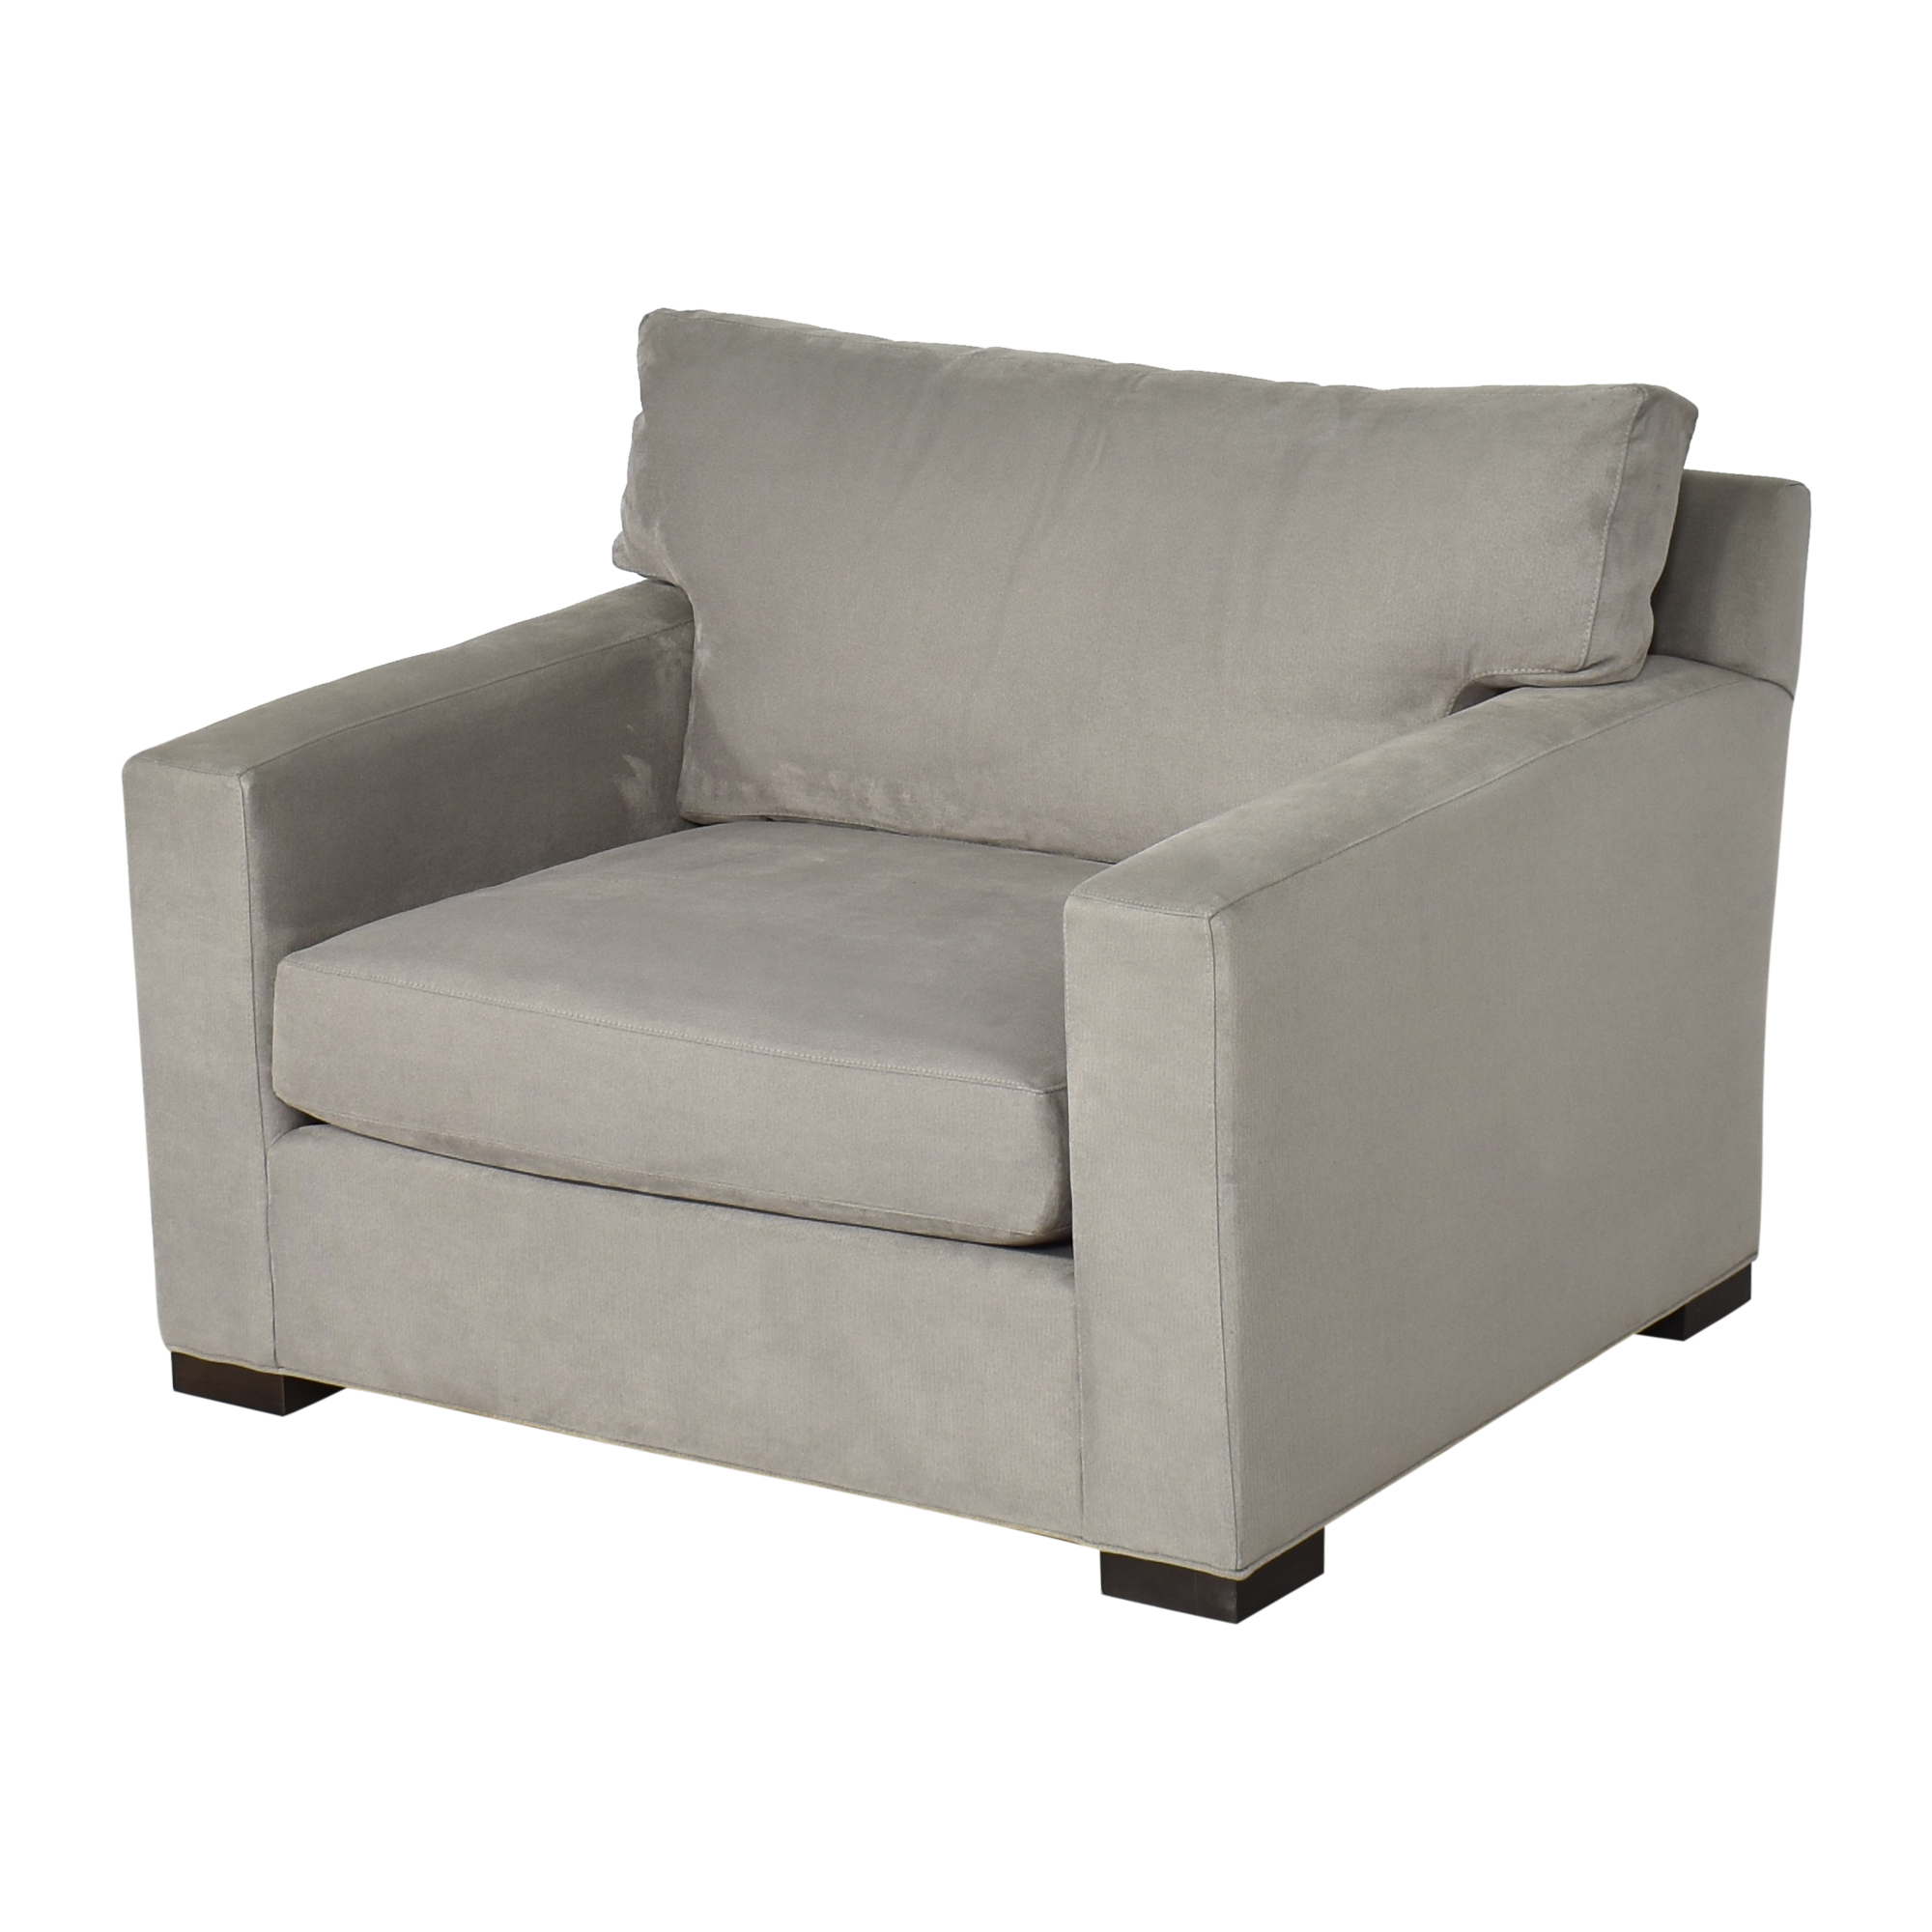 Crate & Barrel Crate & Barrel Axis Chair price